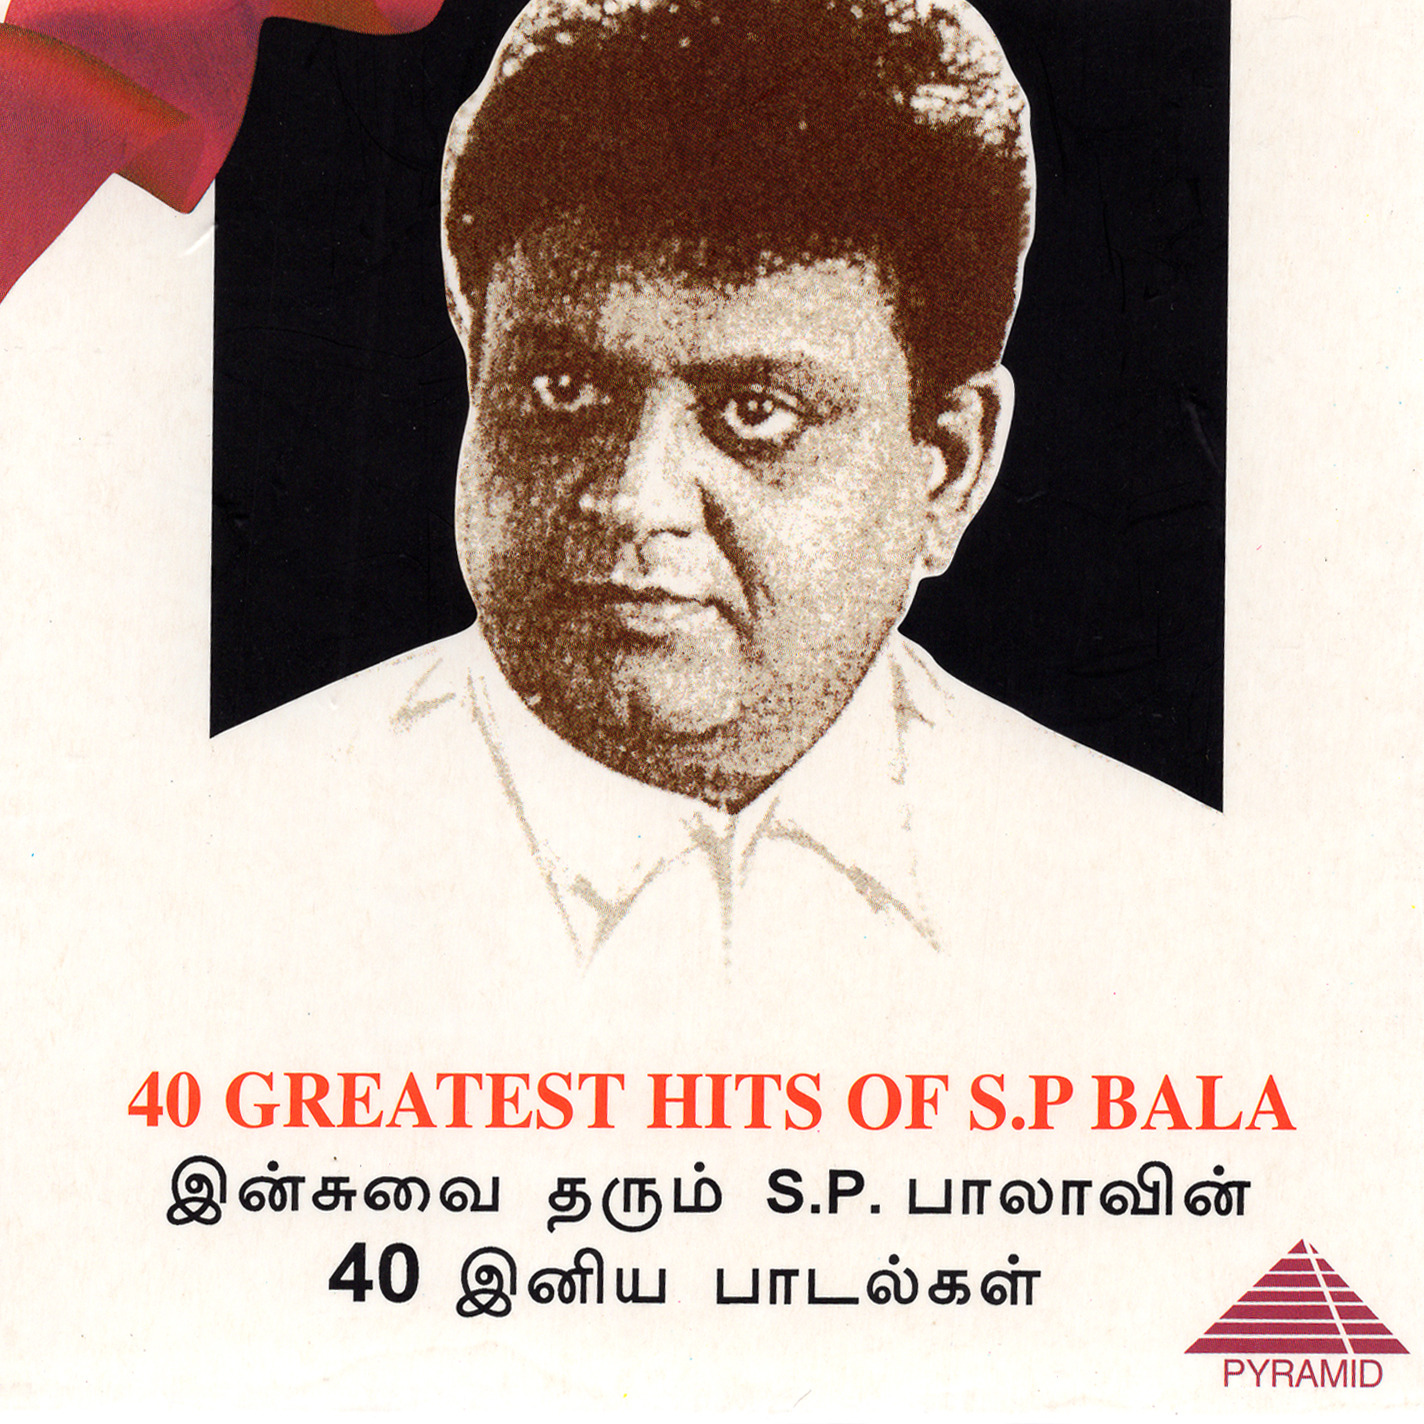 40 Greatest Hits Of S.P.Bala